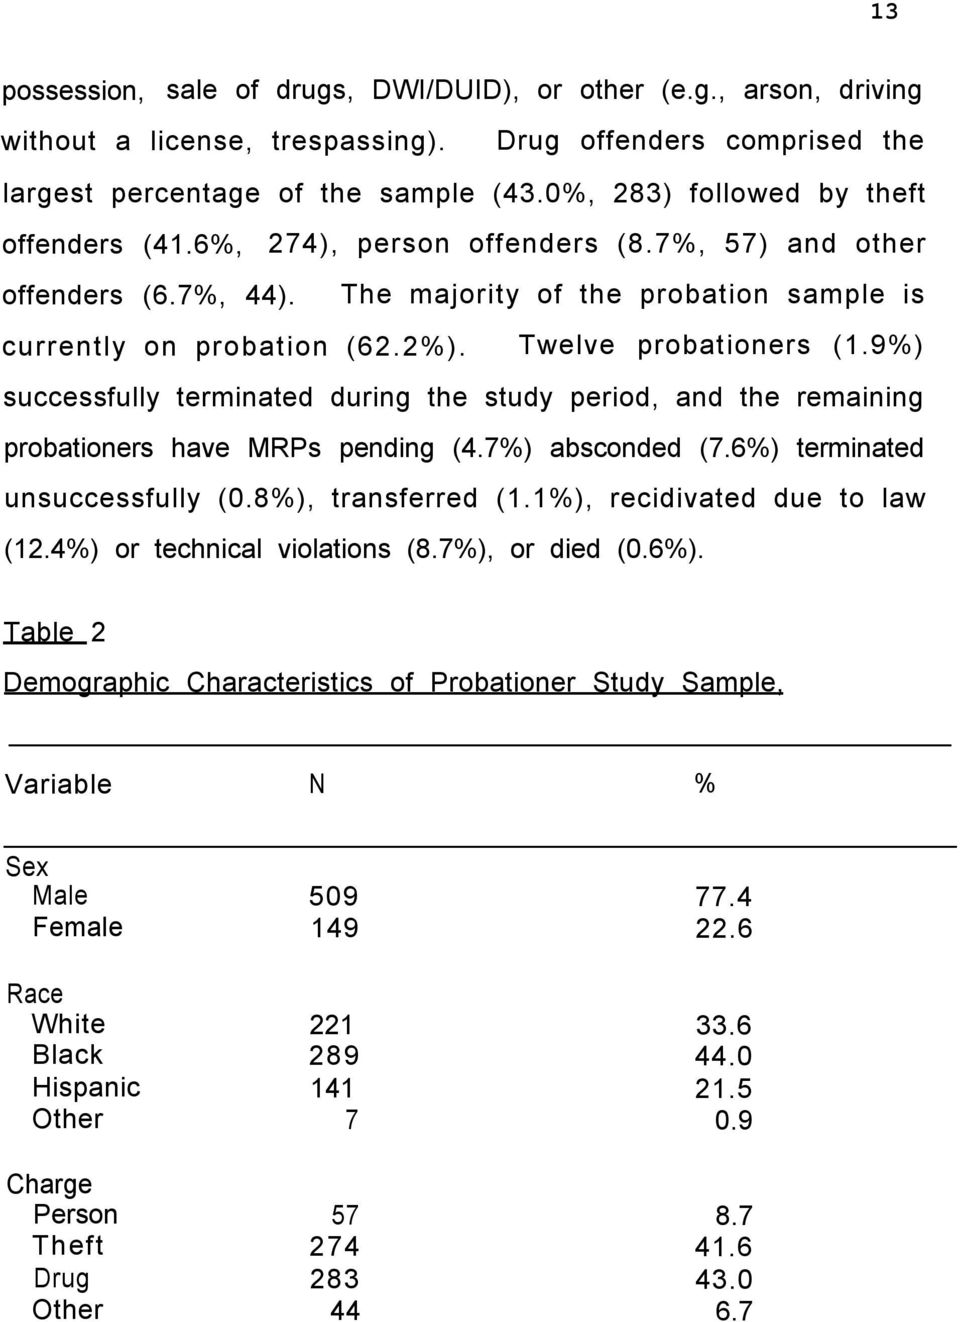 Twelve probationers (1.9%) successfully terminated during the study period, and the remaining probationers have MRPs pending (4.7%) absconded (7.6%) terminated unsuccessfully (0.8%), transferred (1.